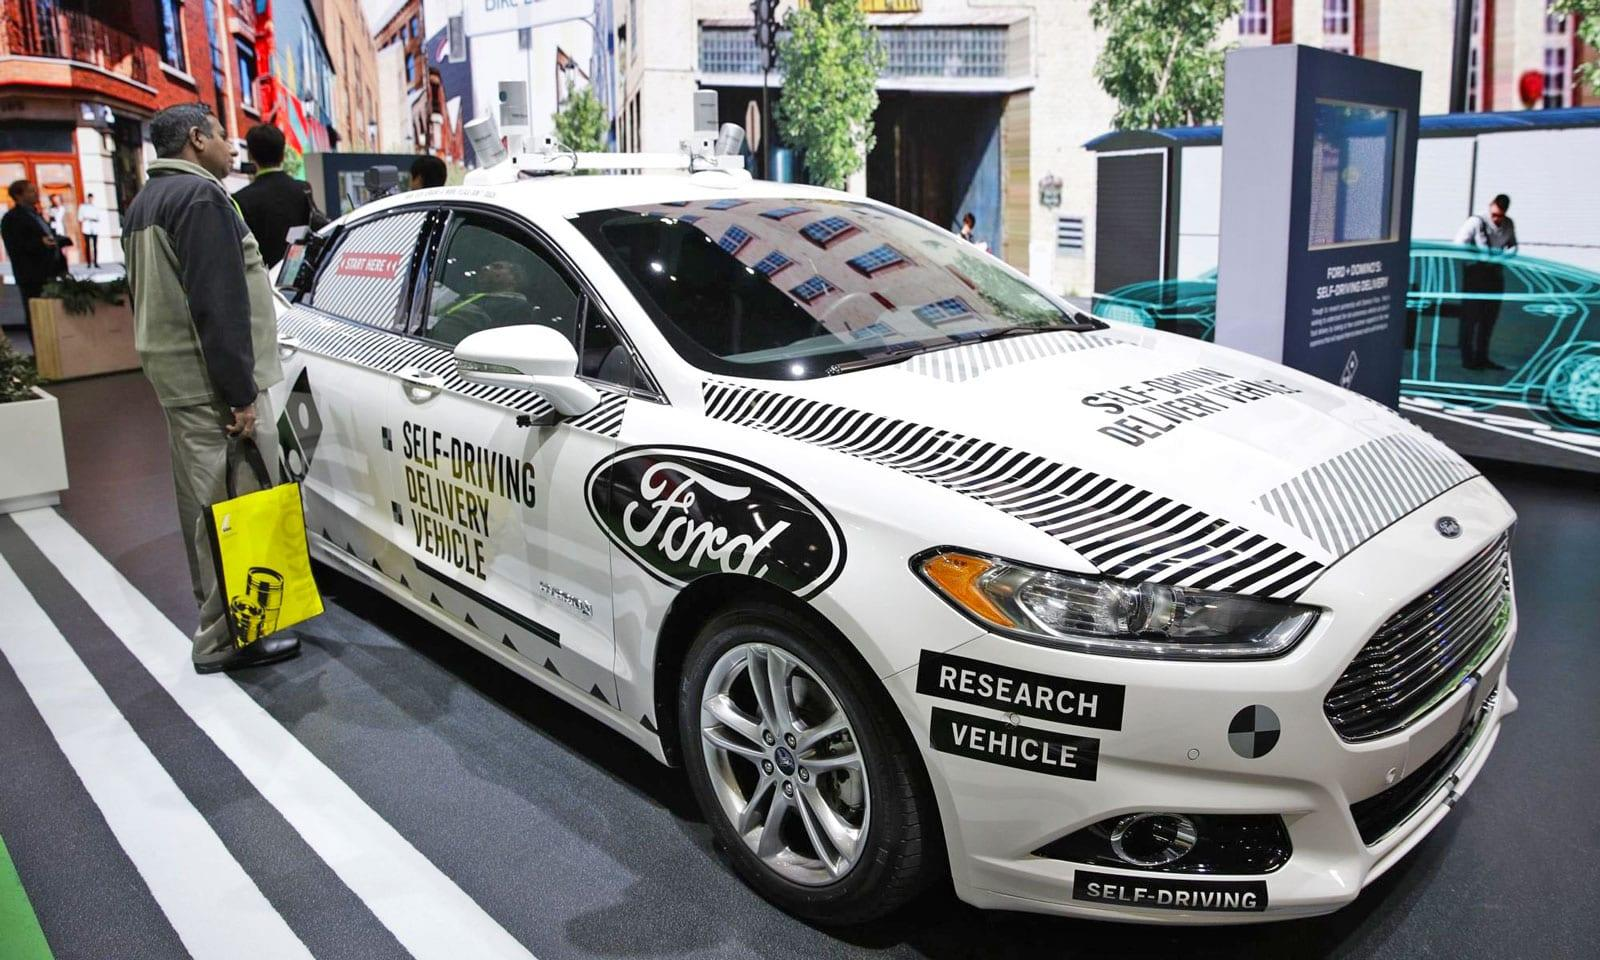 Ford CEO says the company 'overestimated' self-driving cars | Engadget